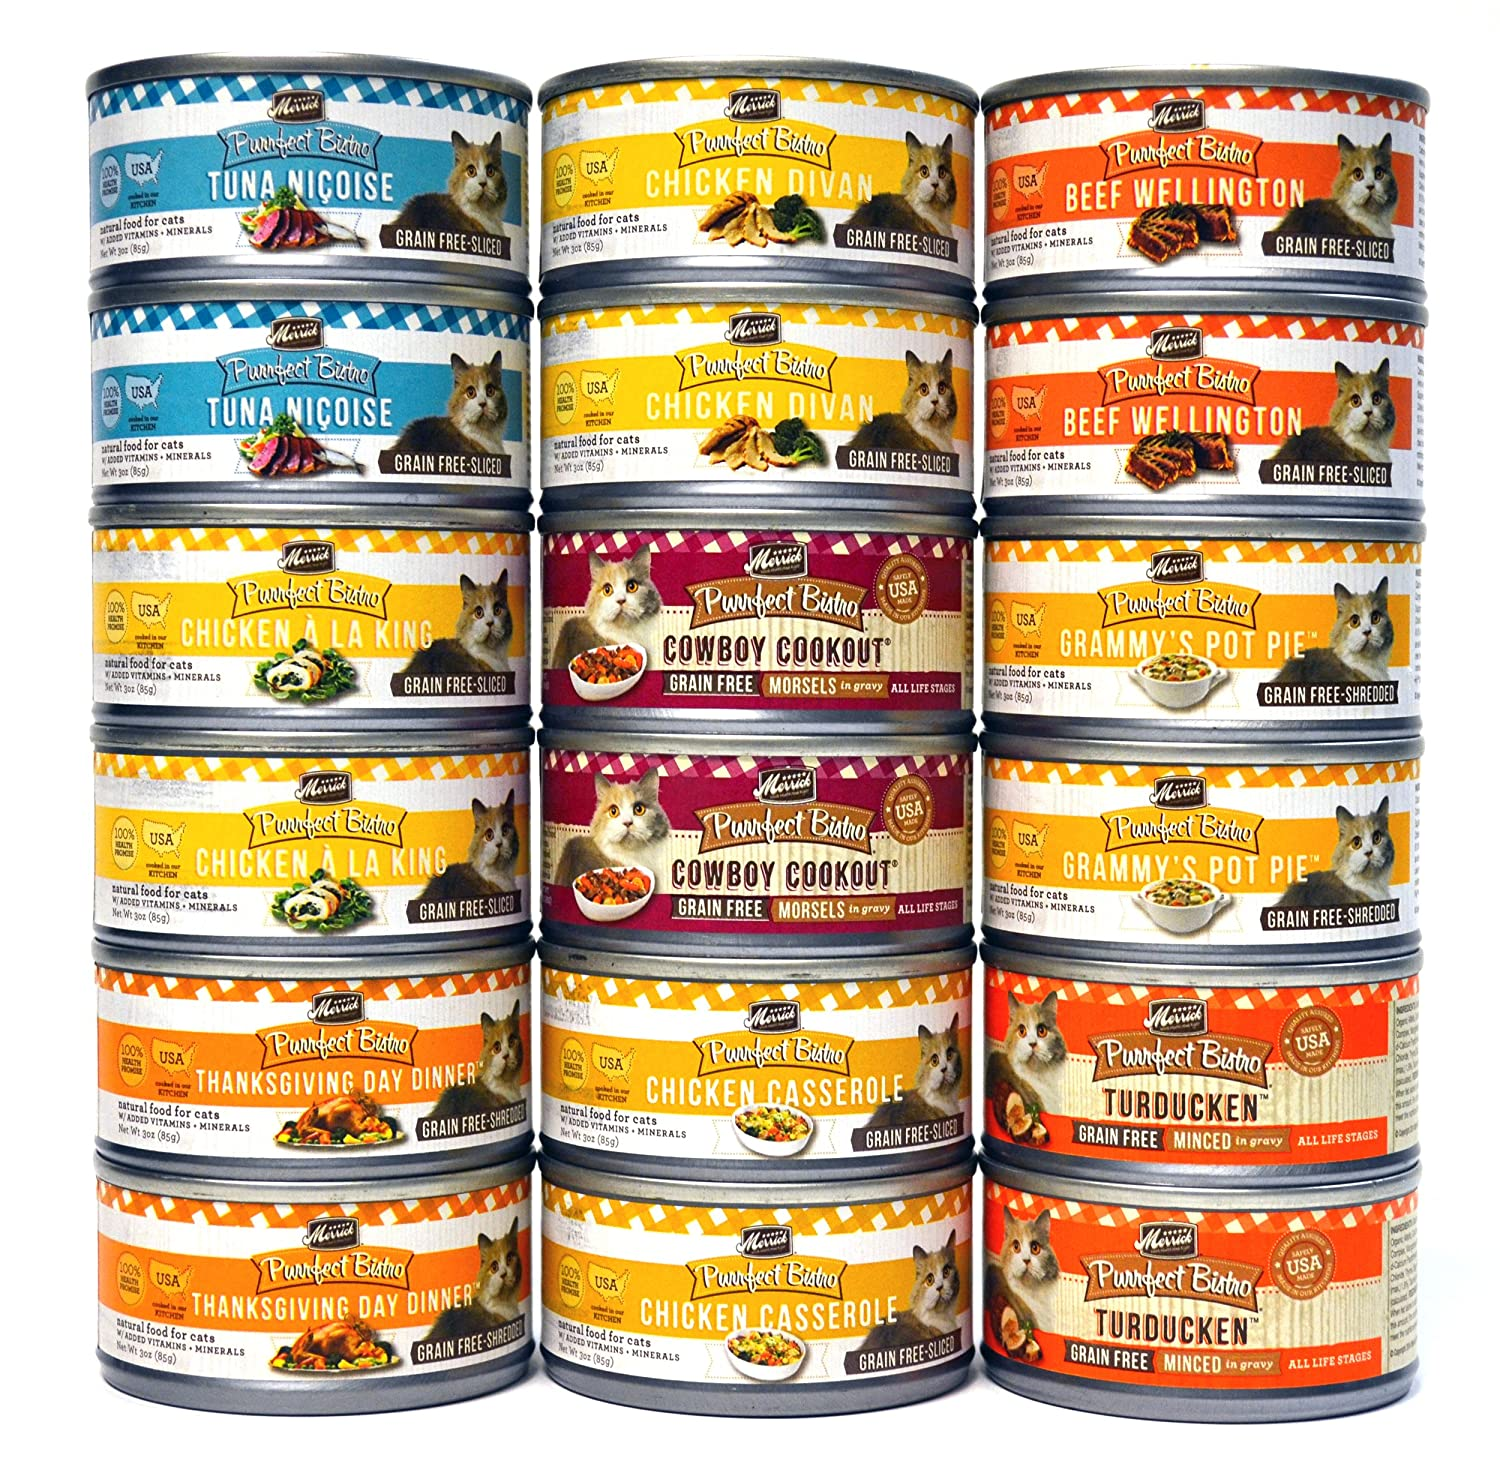 Merrick Purrfect Bistro Canned Cat Food Variety Pack - 9 Flavors (Chicken Divan, Beef Wellington, Thanksgiving Day Dinner, Grammy's Pot Pie, Chicken A La King, Cowboy Cookout, Turducken, Tuna Nicoise, & Chicken Casserole) - 3 Ounces Each (18 Total Cans - casserole set